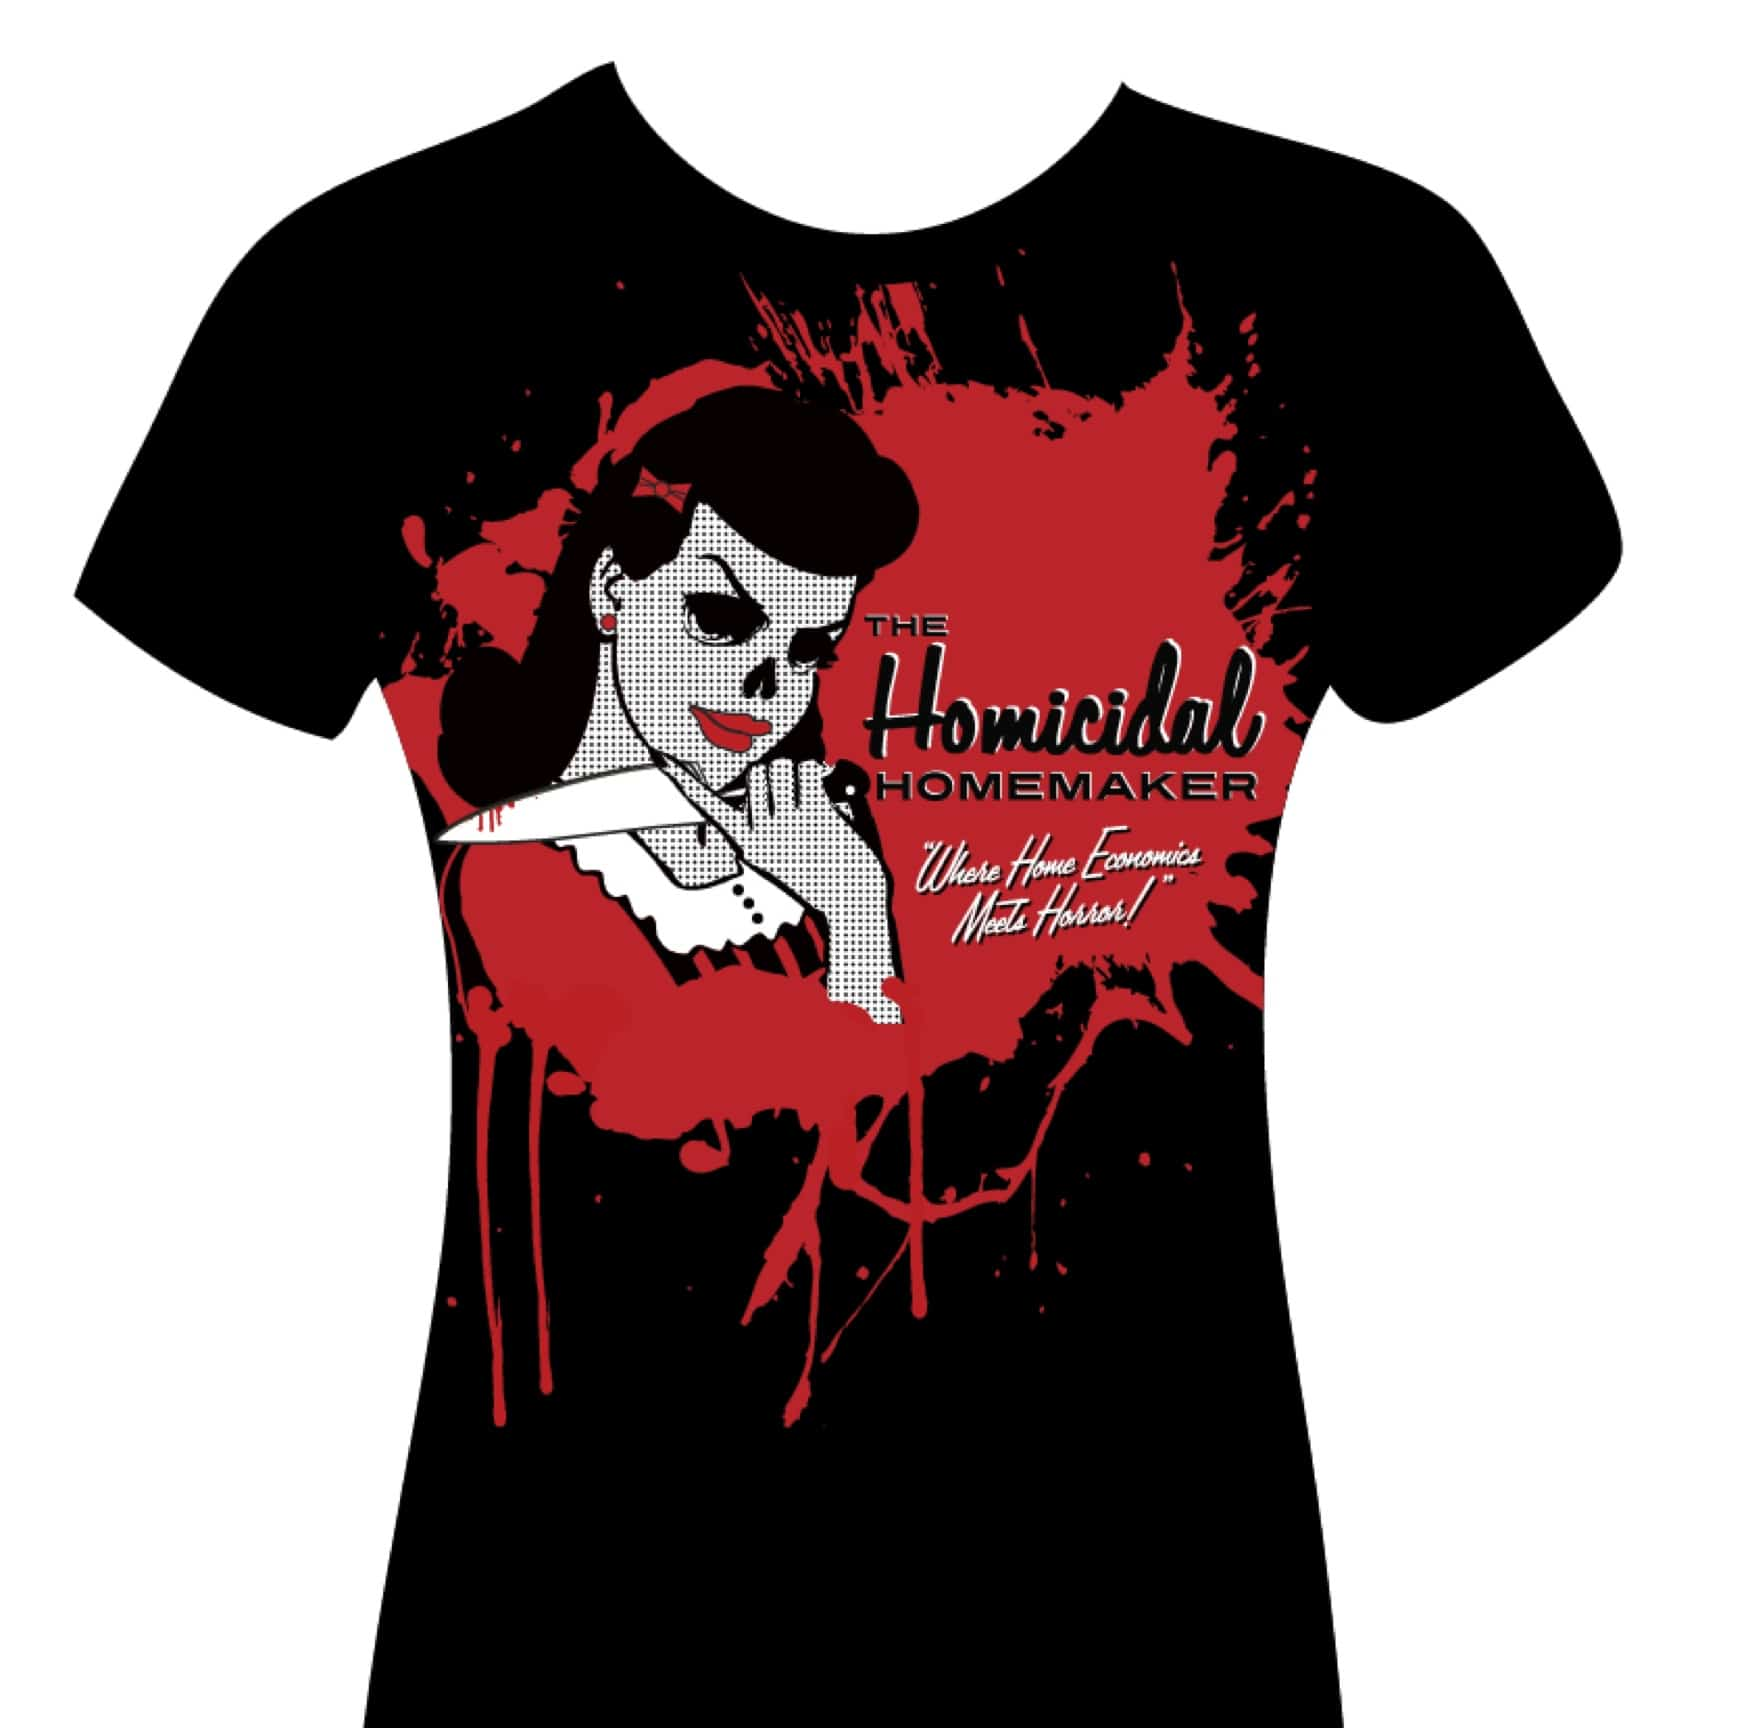 homicidal homemaker shirt